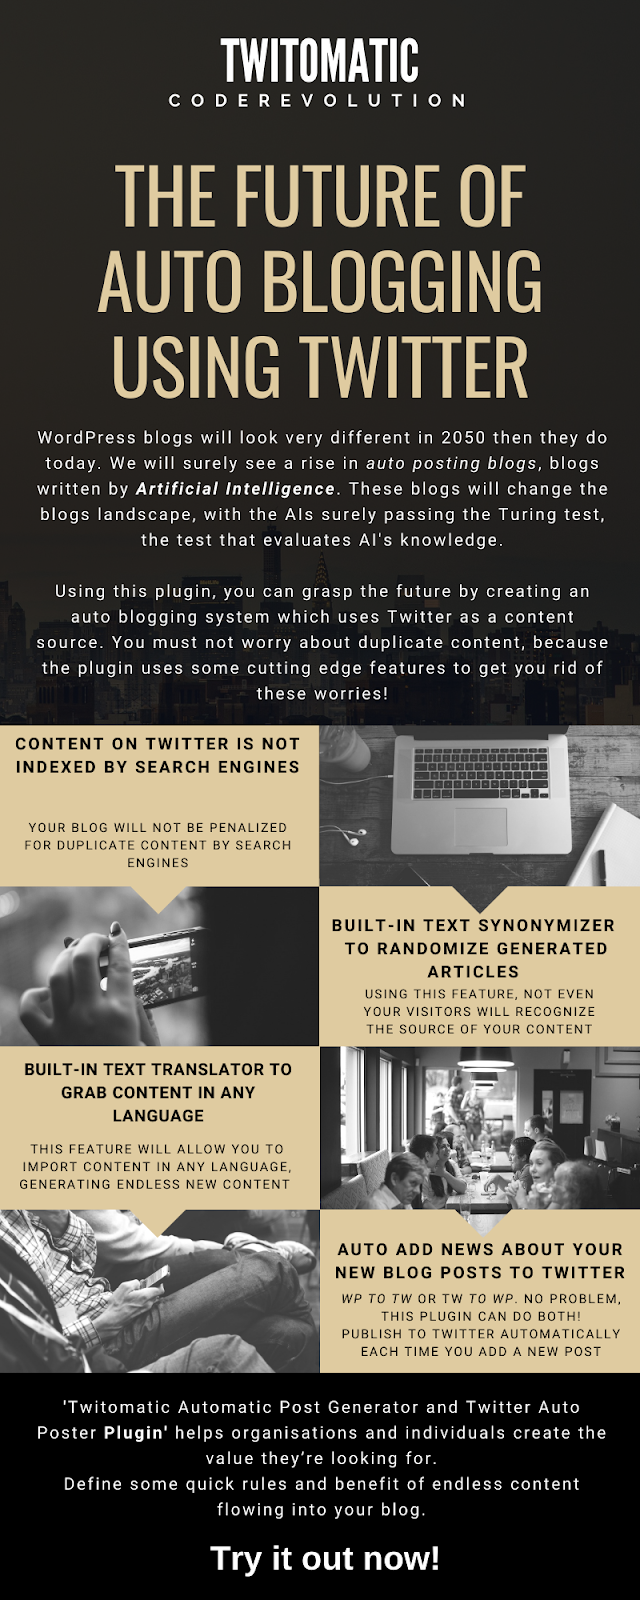 Twitomatic Automatic Post Generator and Twitter Auto Poster Plugin